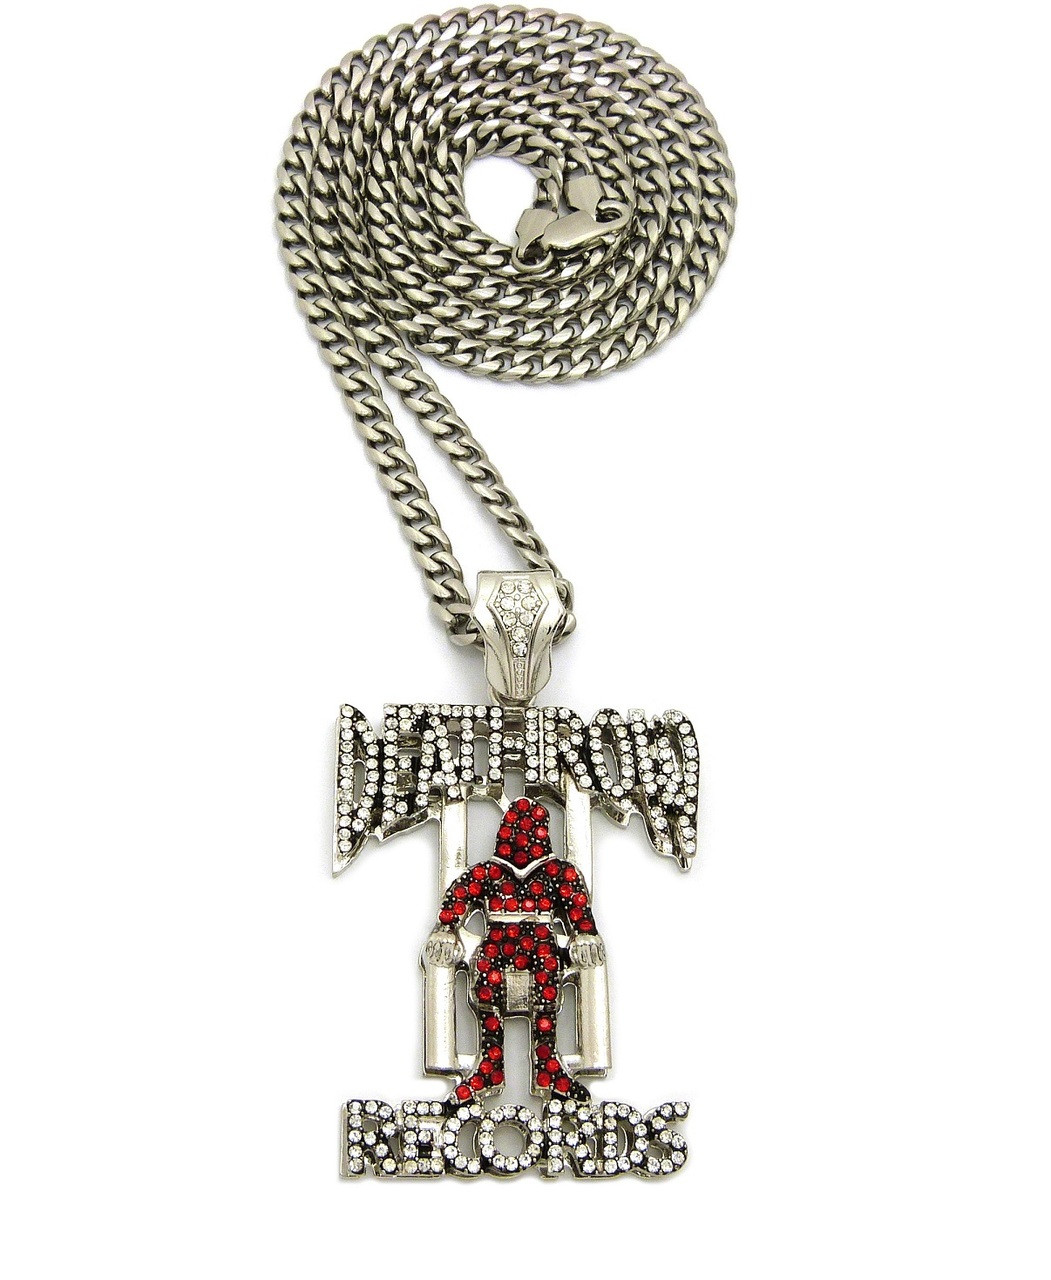 Stainless steel link 3d simulated diamond death row pendant bling stainless steel link 3d simulated diamond death row pendant aloadofball Choice Image